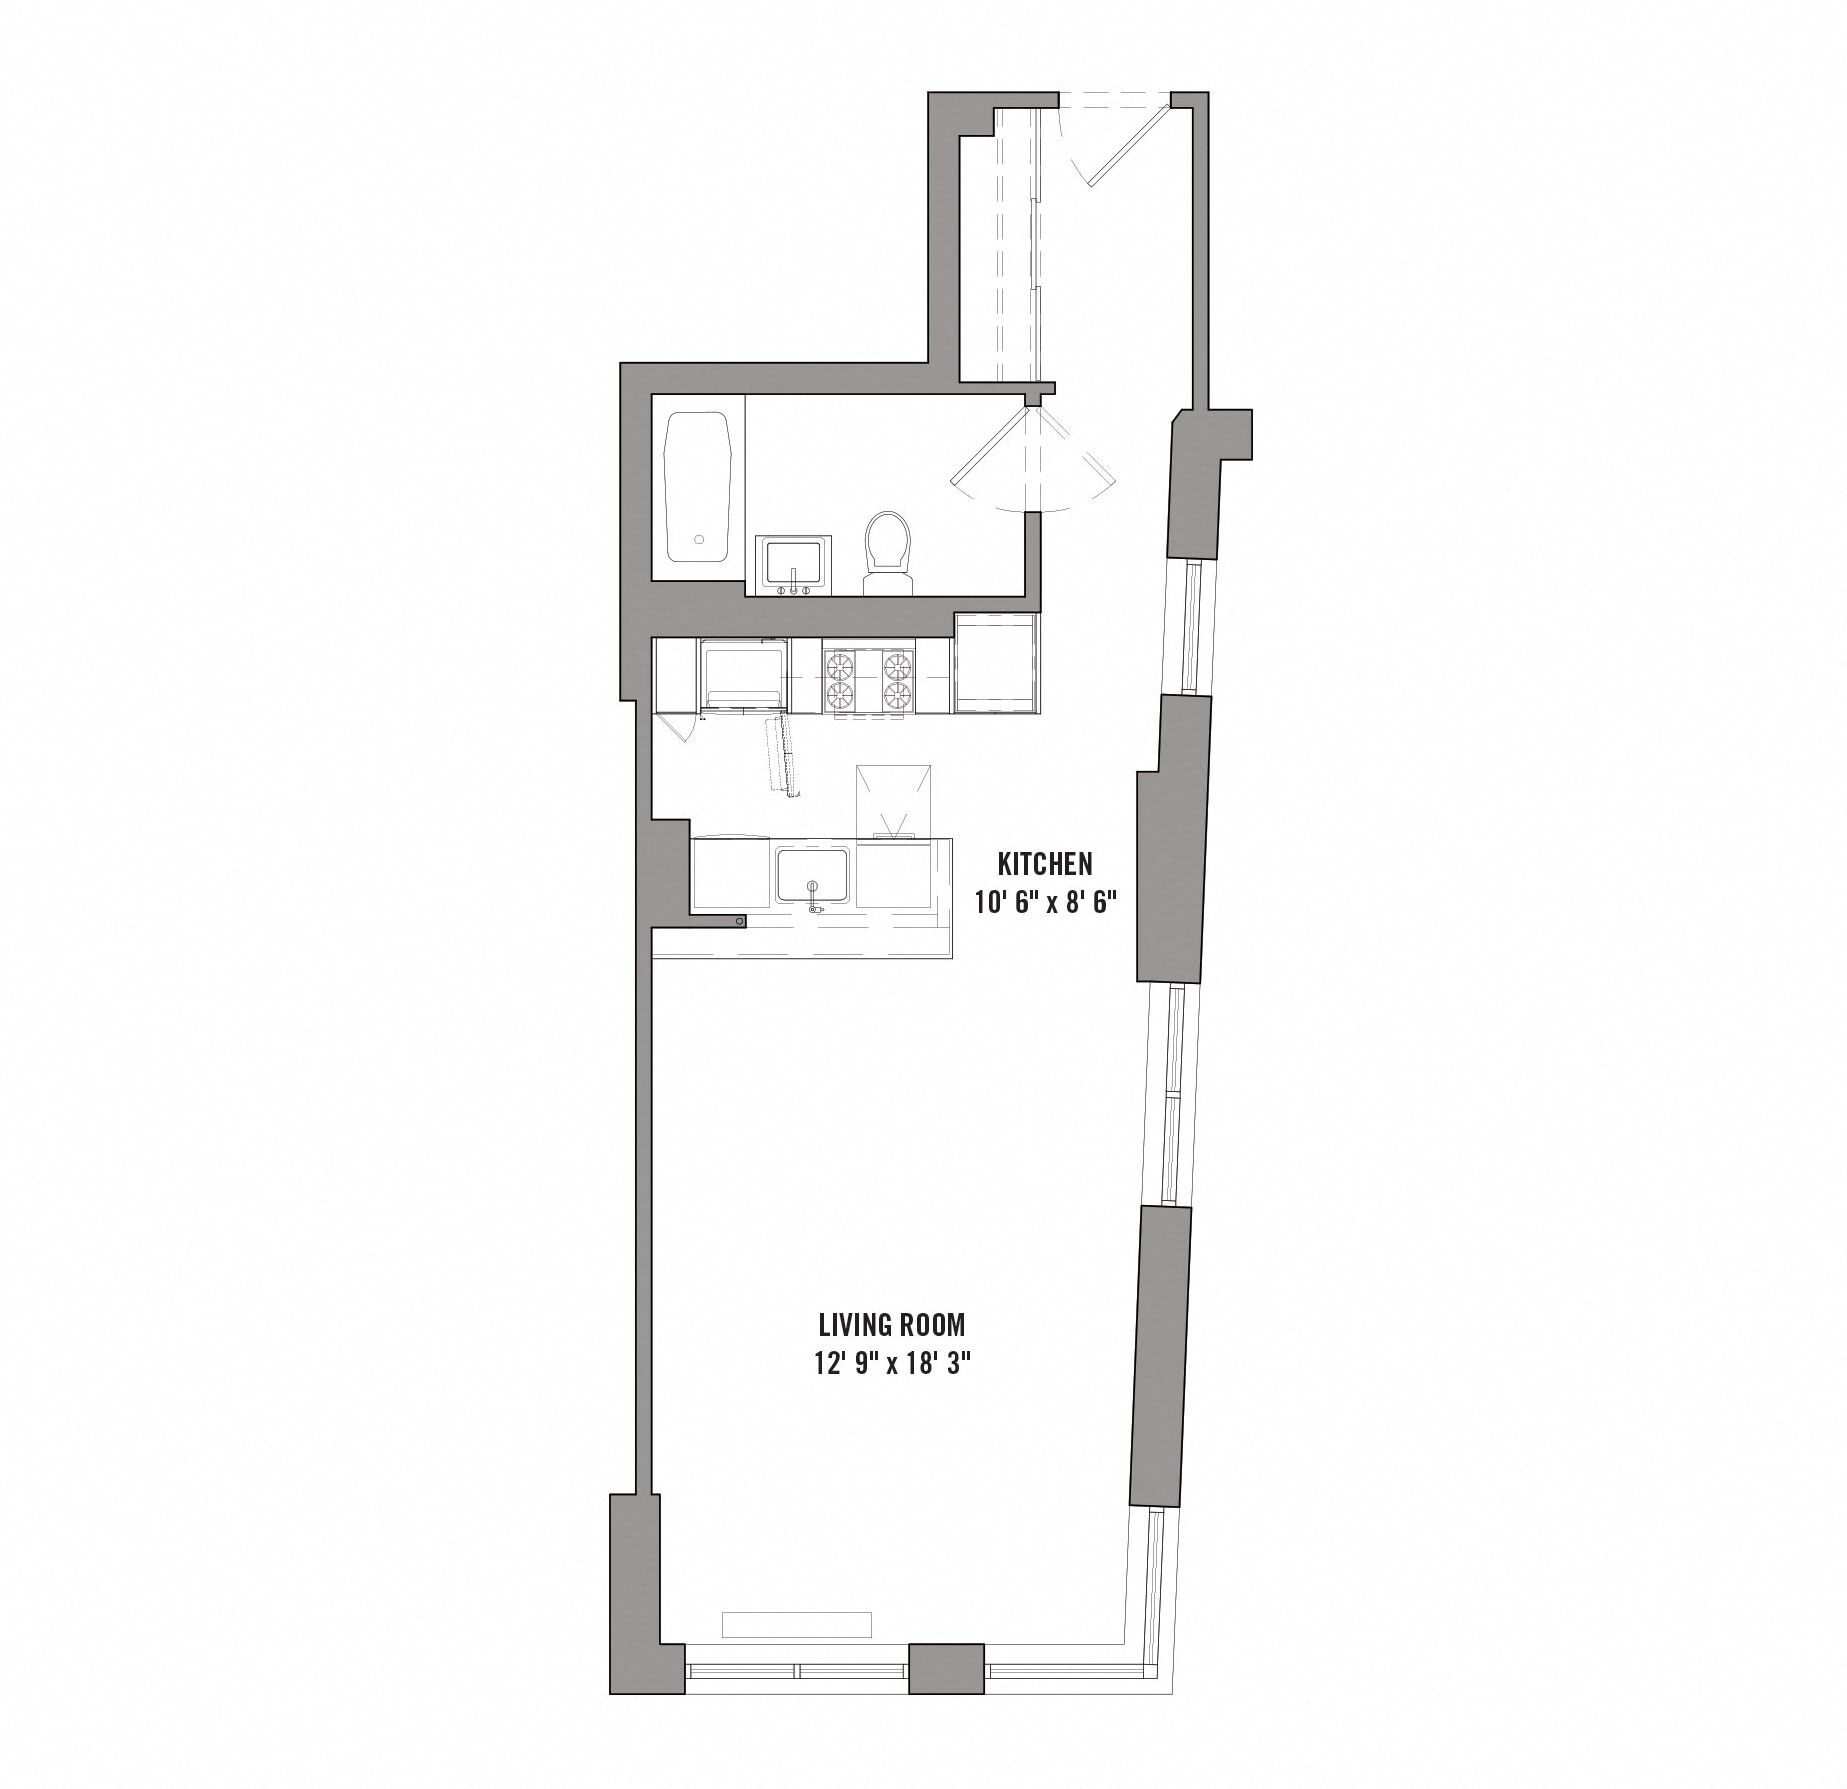 Floor plan diagram for unit A2. Studio apartment with kitchen, living area, and bathroom.